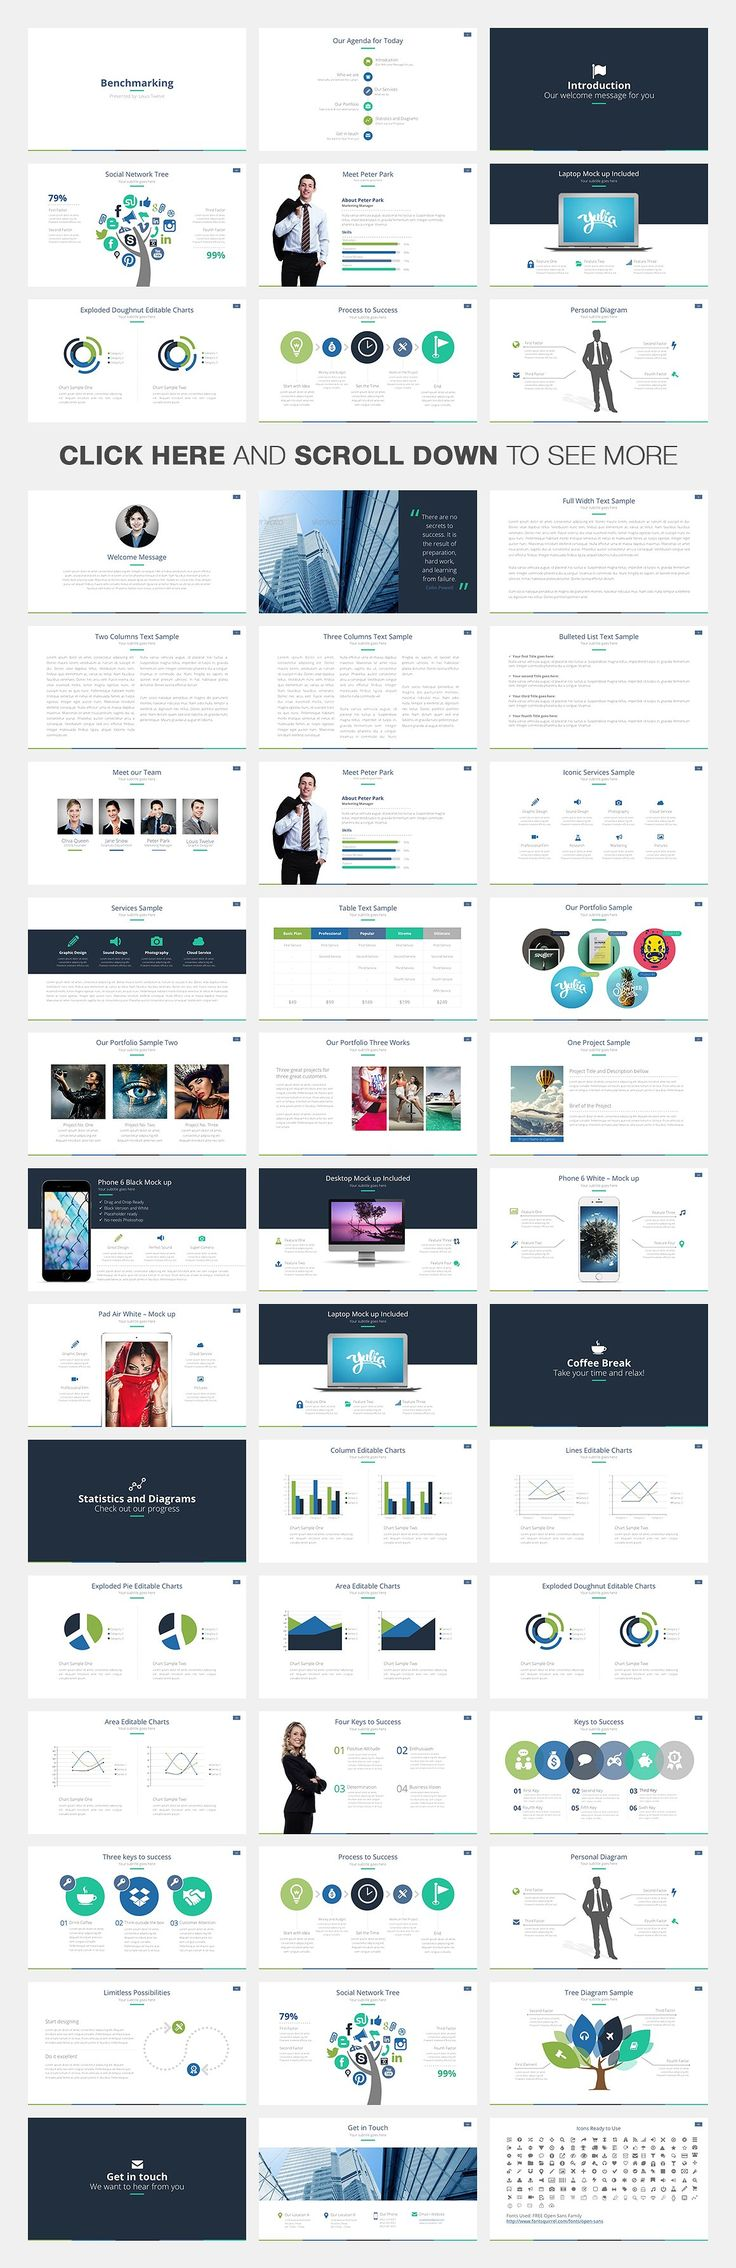 14 best cool powerpoint templates images on pinterest ppt design benchmarking keynote template by louis twelve on creative market toneelgroepblik Choice Image